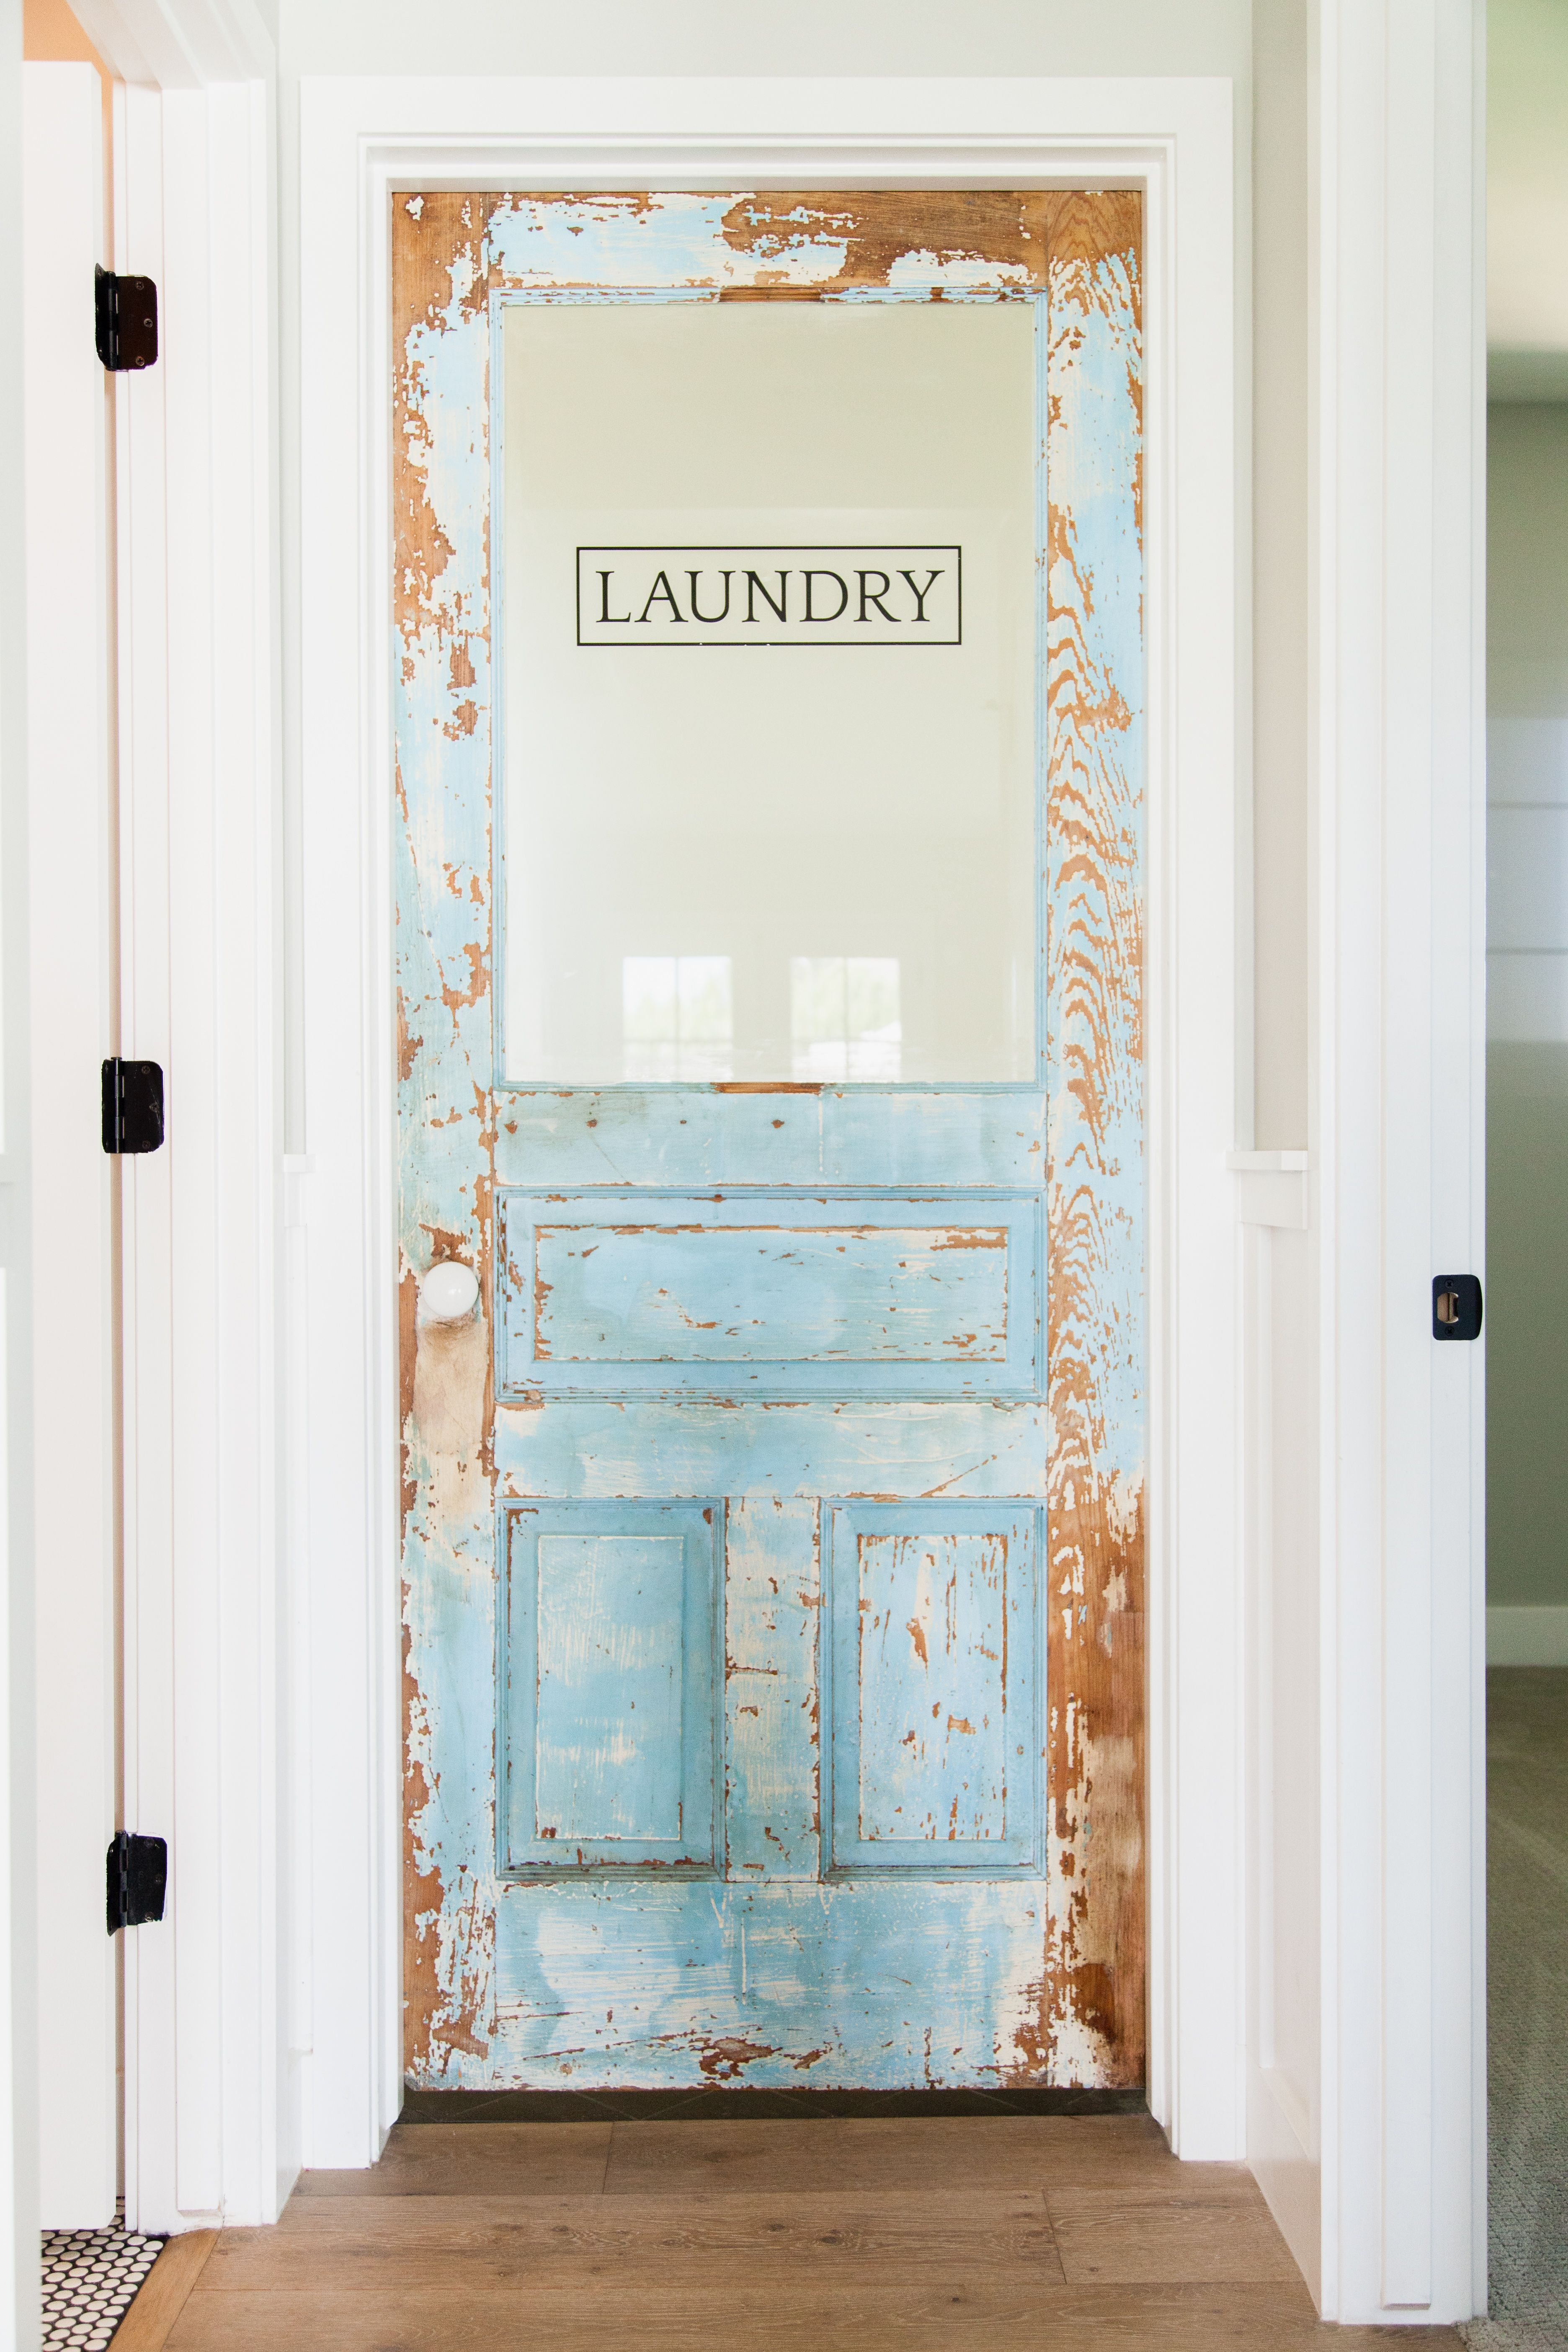 Custom Laundry Door With Original Vintage Paint By